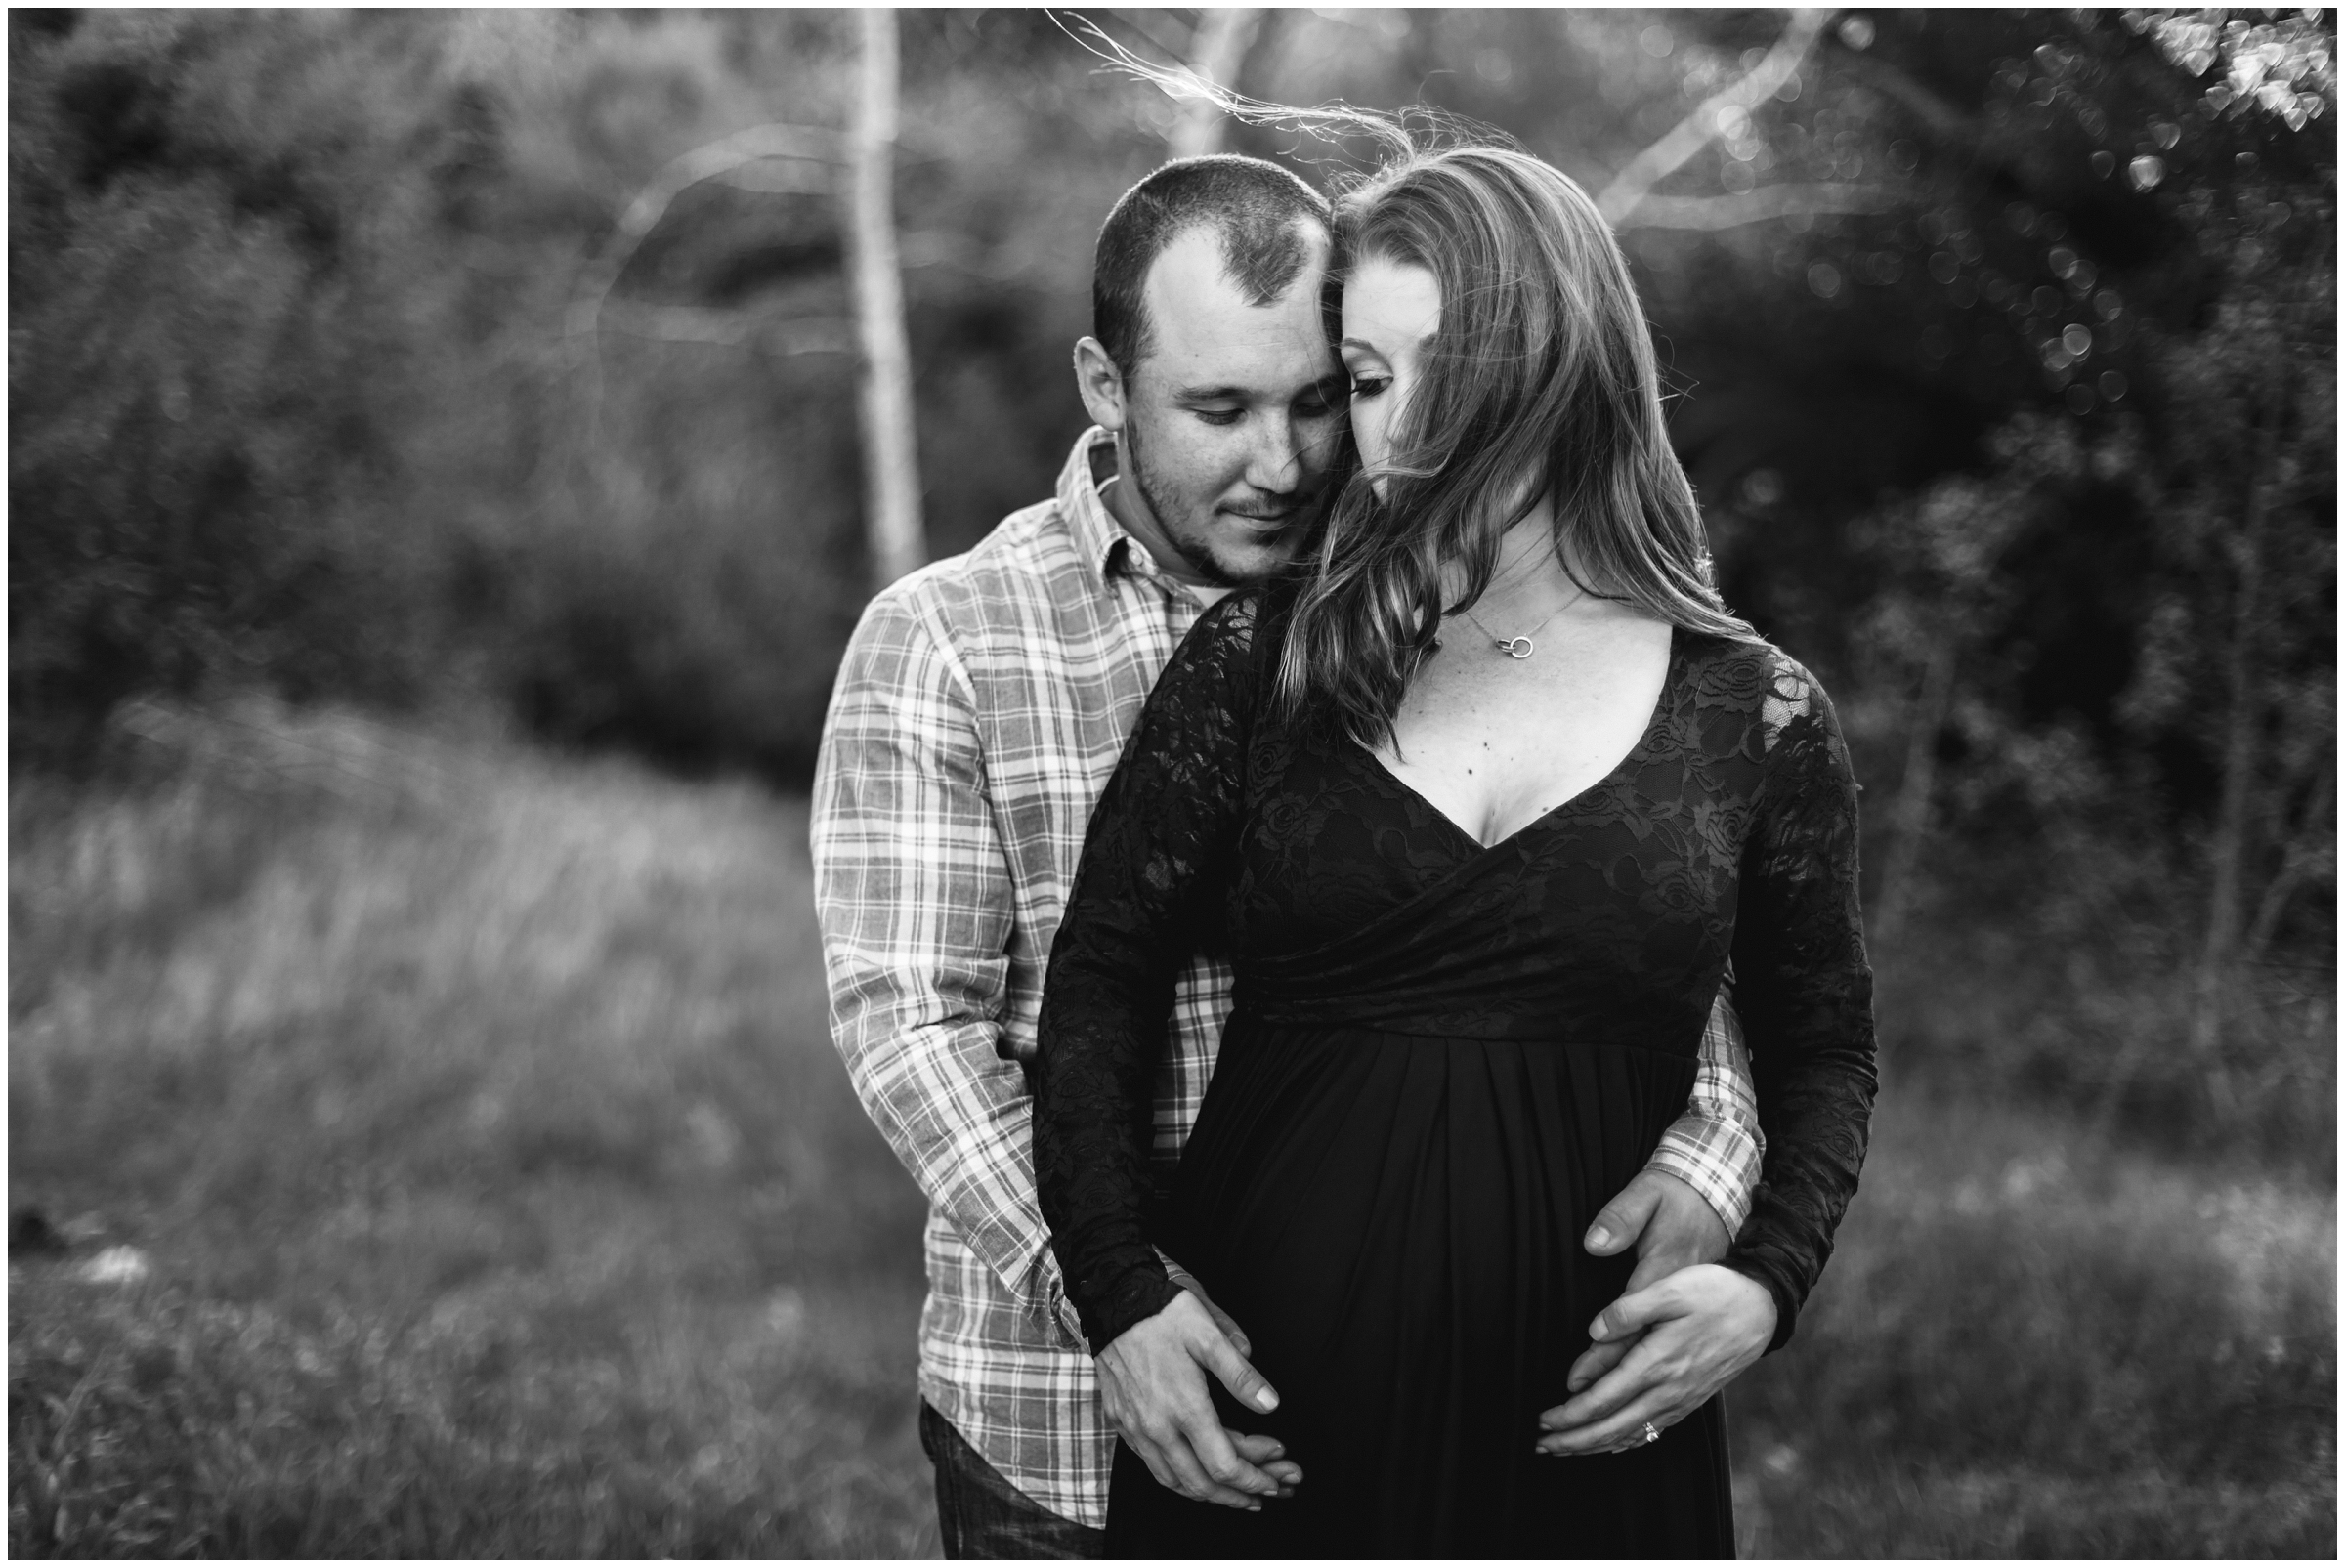 Dramatic Emotive Maternity Portraits by Just Maggie Photography - Los Angeles Maternity and Newborn Photographer